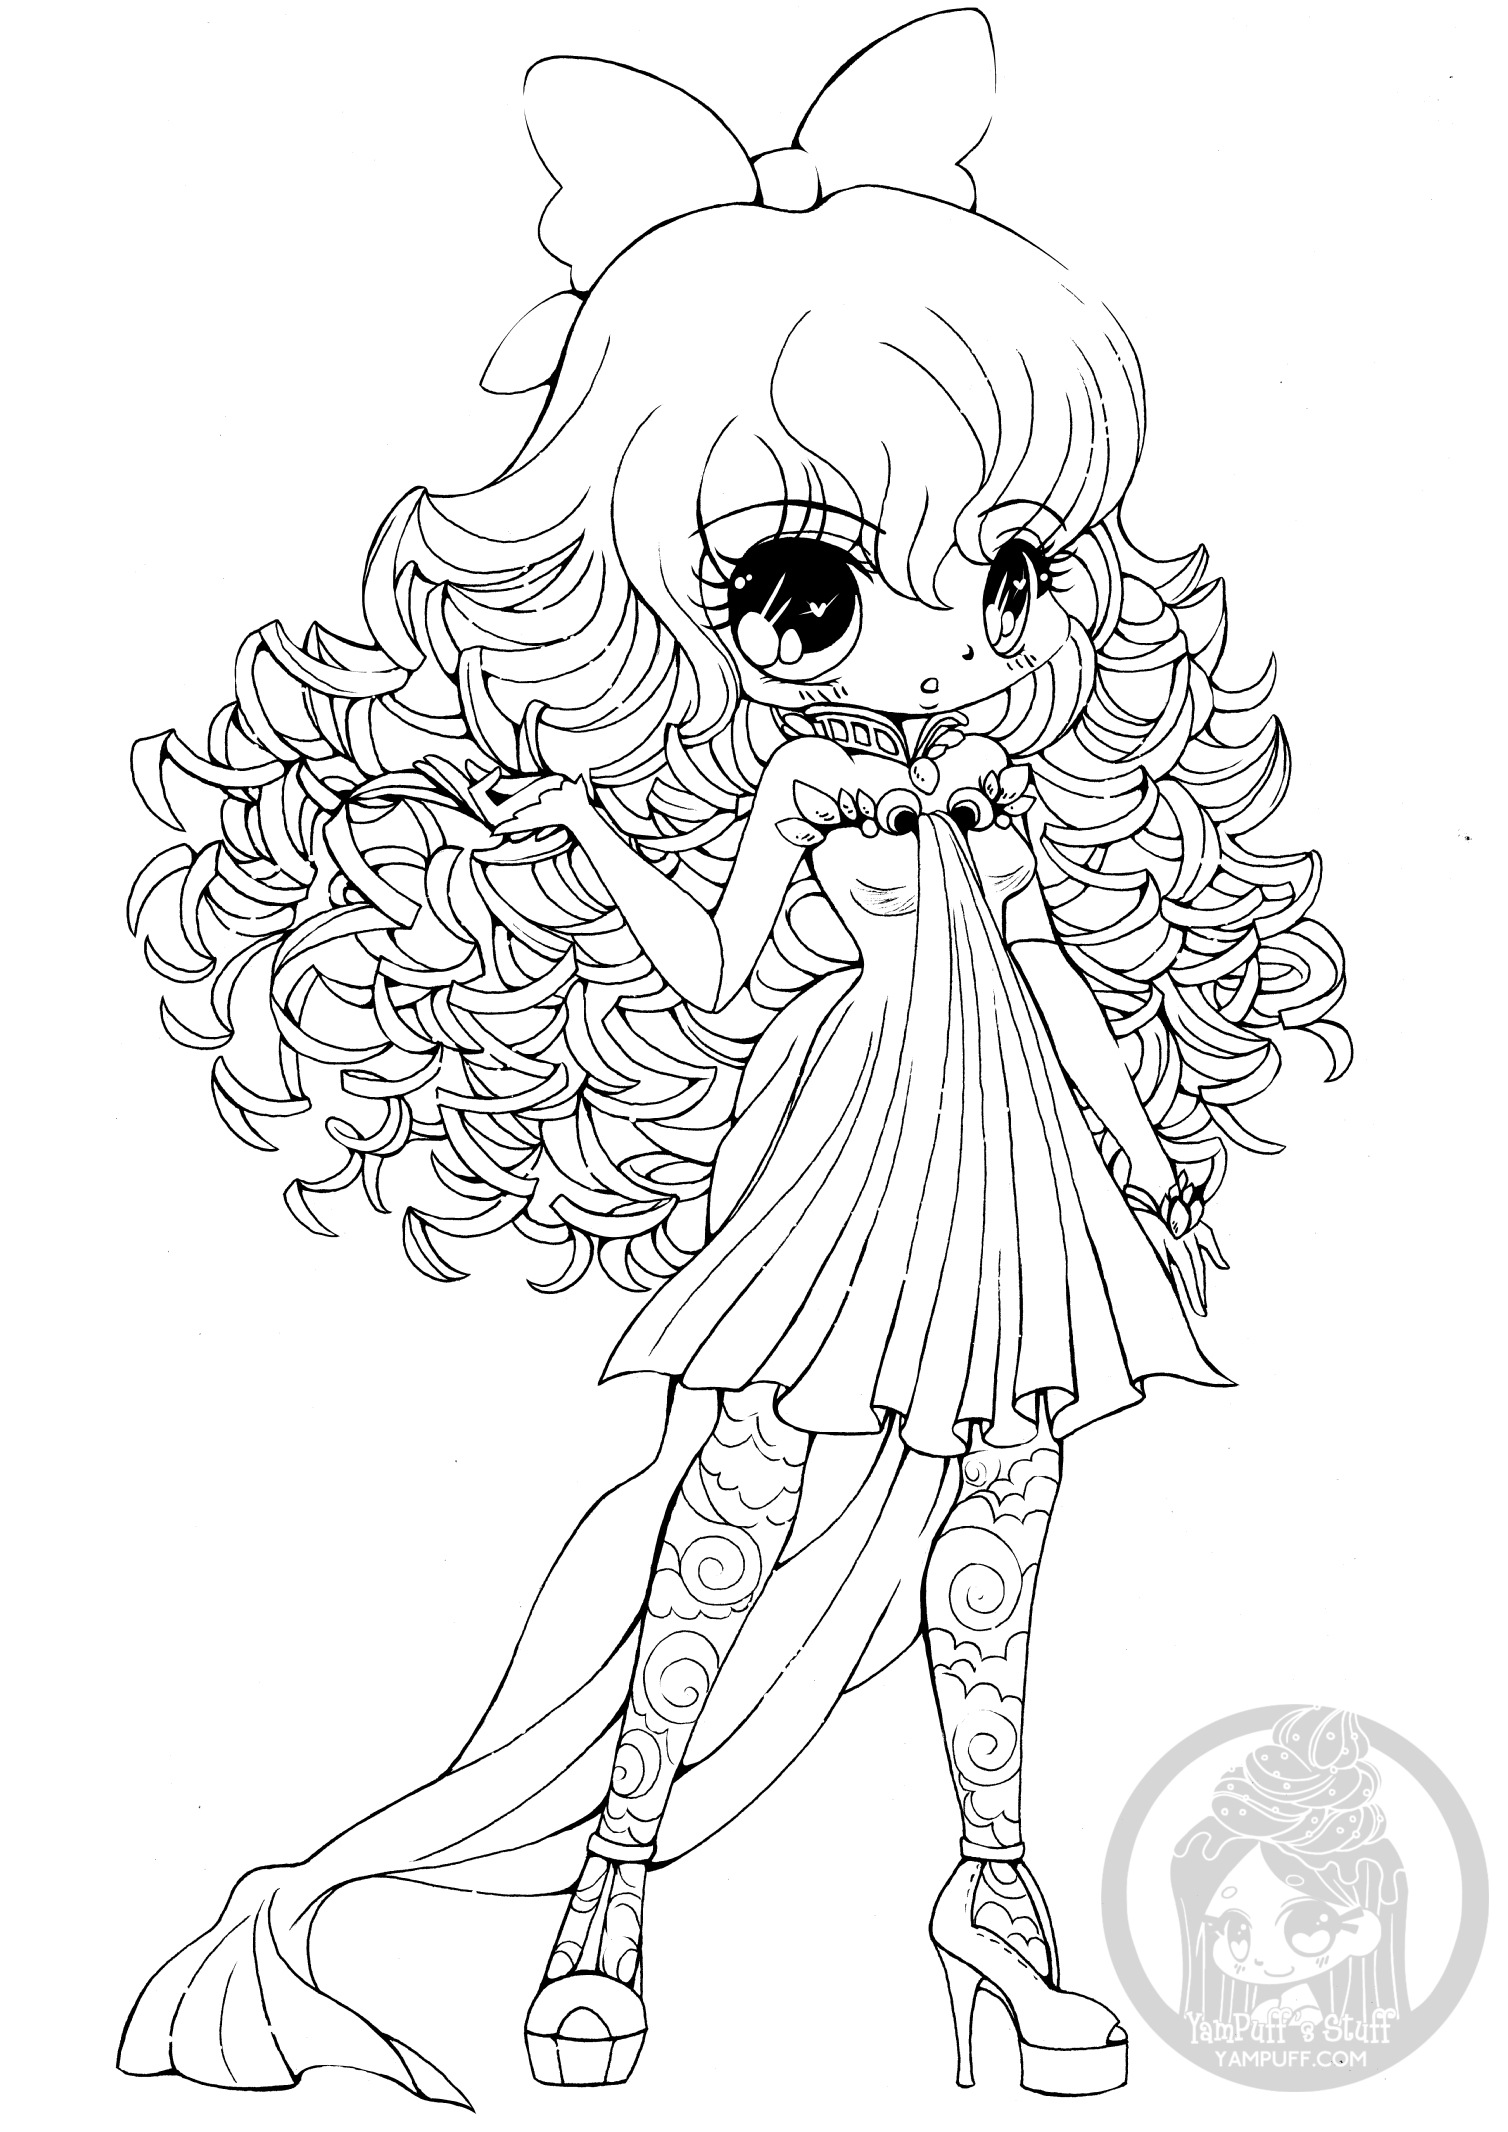 chibi girls coloring pages chibi coloring pages to download and print for free pages coloring chibi girls